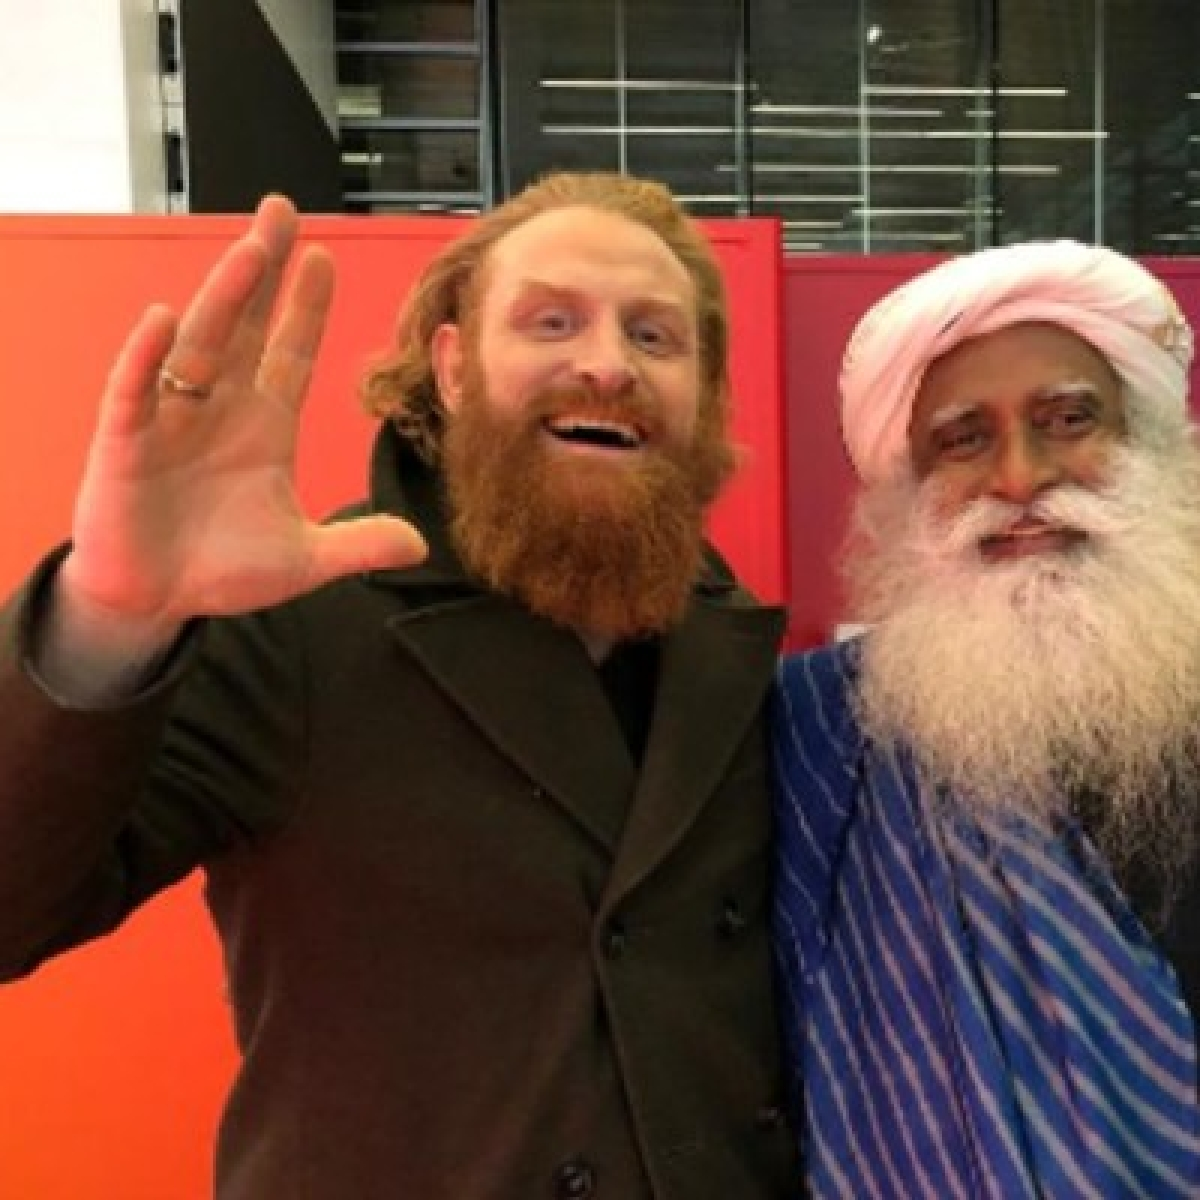 Sadhguru met Game of Thrones Tormund and Twitter can't keep calm